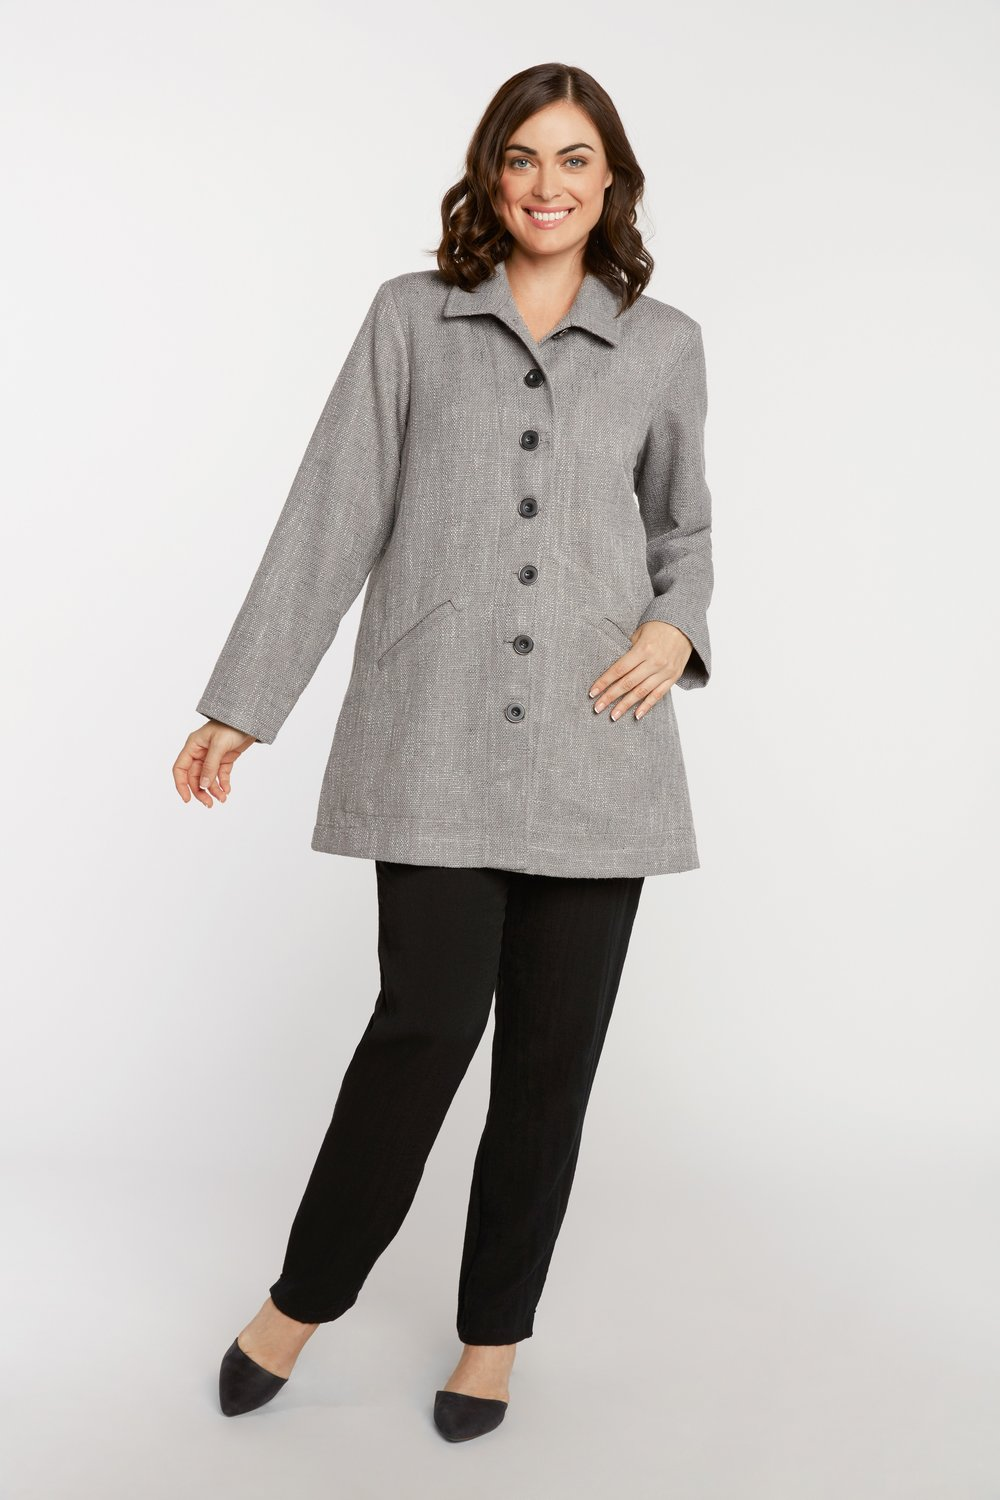 AA8109 - Banded Back Jacket SG27 - Grey